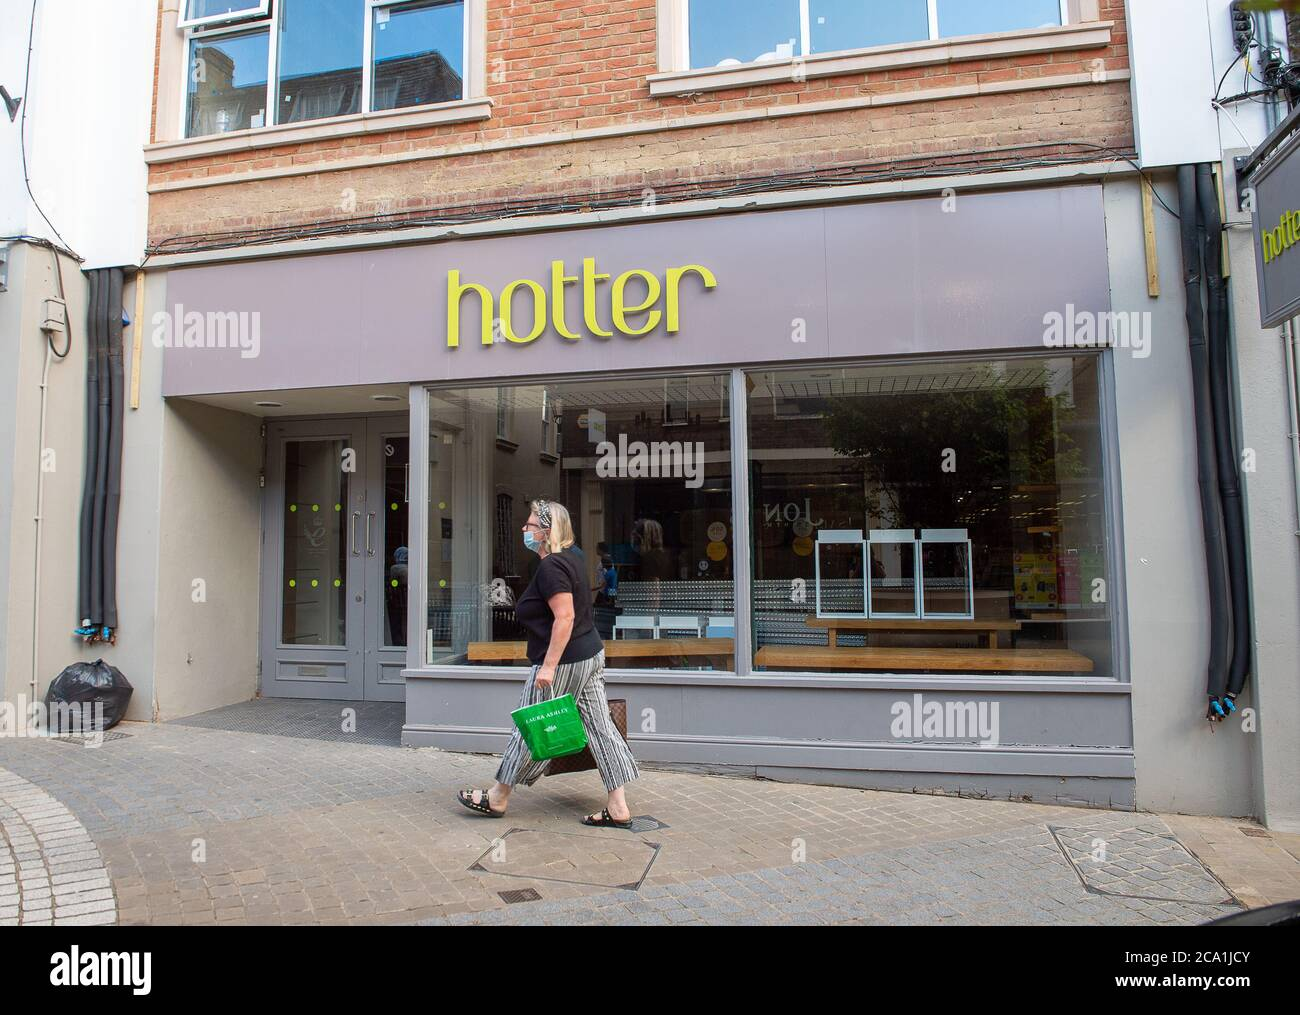 Windsor, Berkshire, UK. 3rd August, 2020. Hotter Shoes are going ahead with a Compulsory Voluntary Arrangement (CVA) which will mean the closure of 46 of their stores. All shoes on sale in the Windsor store have been removed so it may be one of the store closure casualties. Credit: Maureen McLean/Alamy Live News Stock Photo